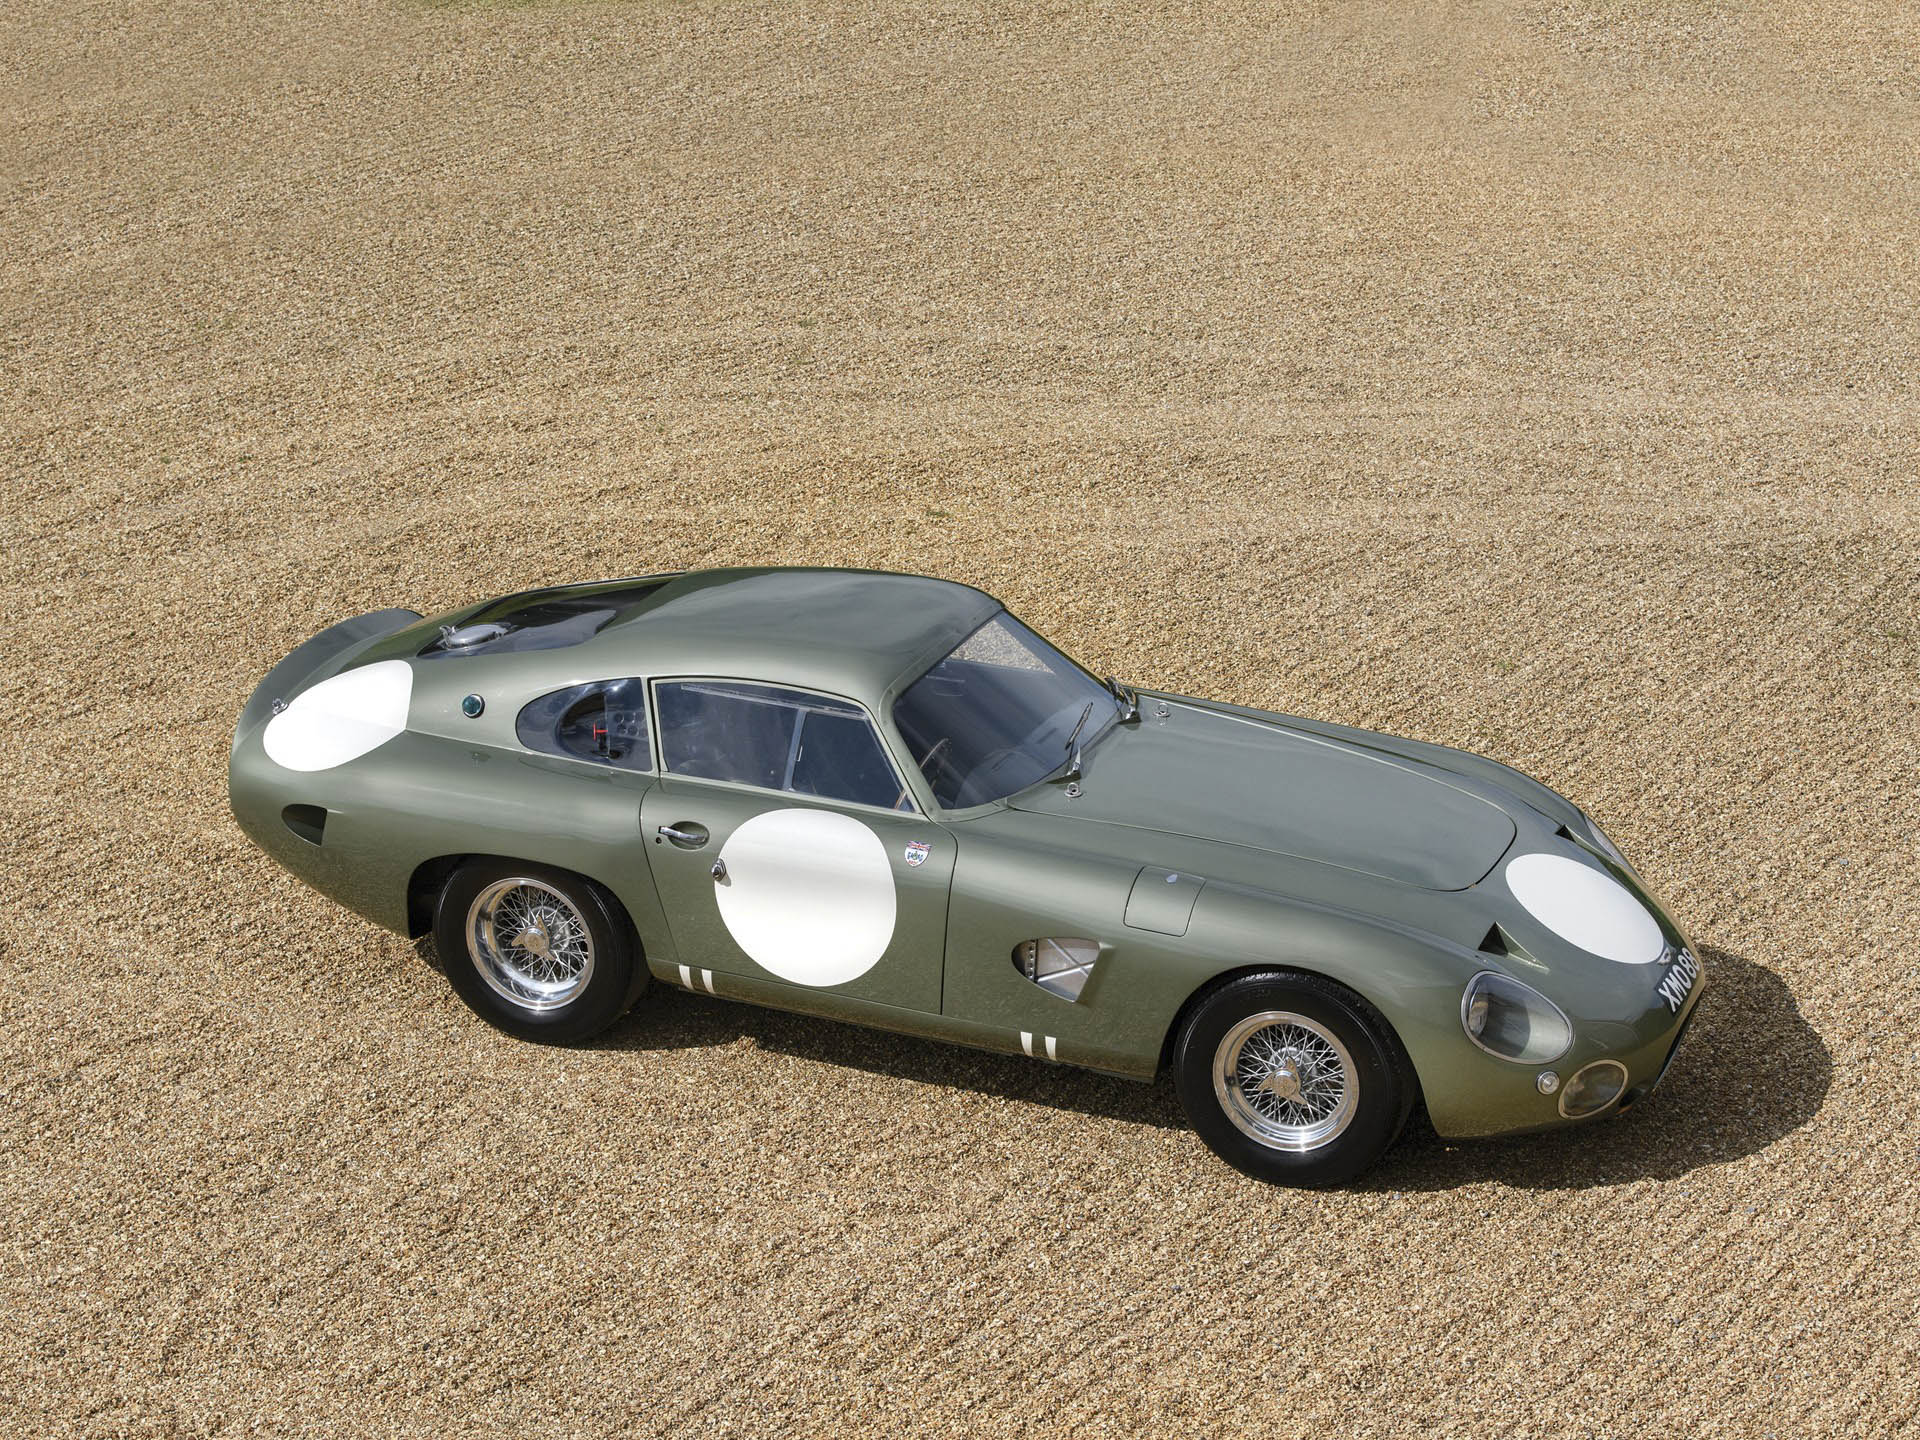 1963 Aston Martin DP215 Grand Touring Competition Prototype overhead